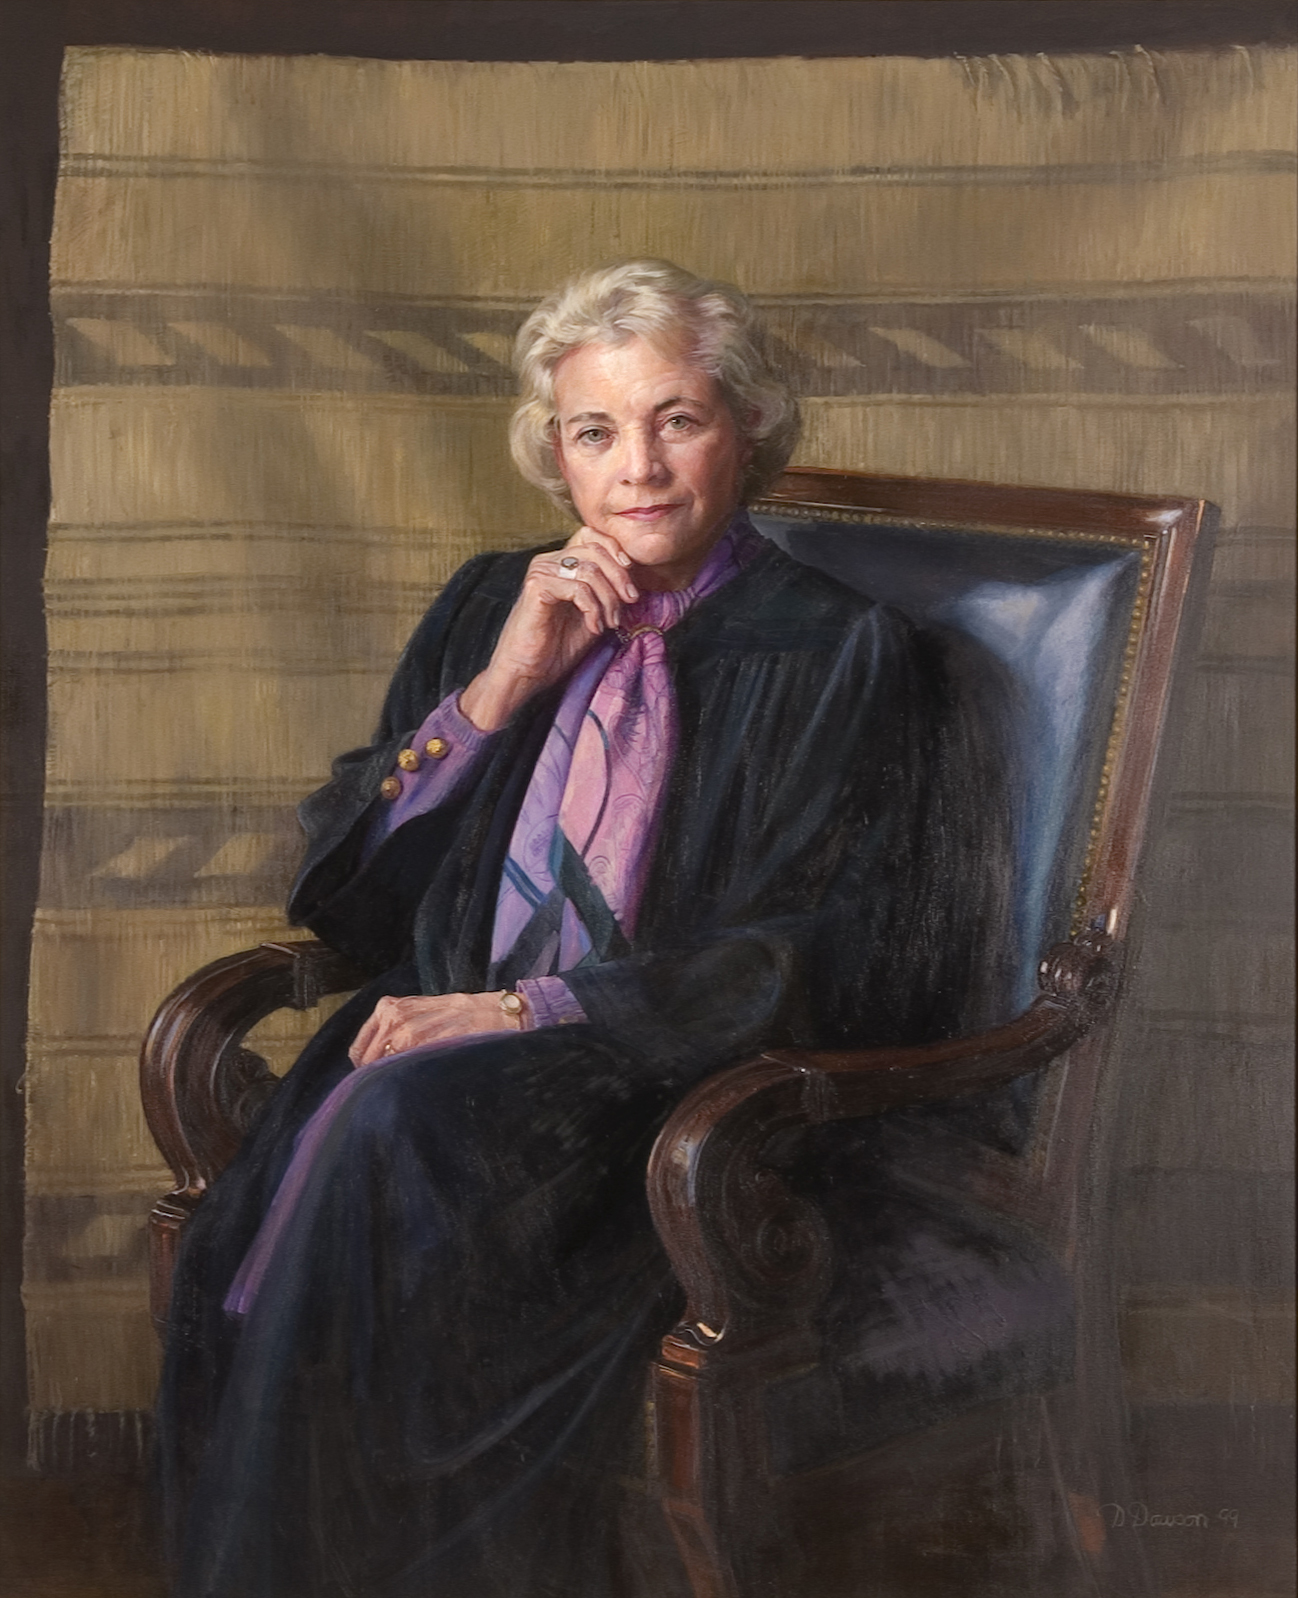 a biography of sandra day oconnor a jurist on the supreme court Washington, july 7 - president reagan announced today that he would nominate sandra day o'connor, a 51-year-old judge on the arizona court of appeals, to the united states supreme court.